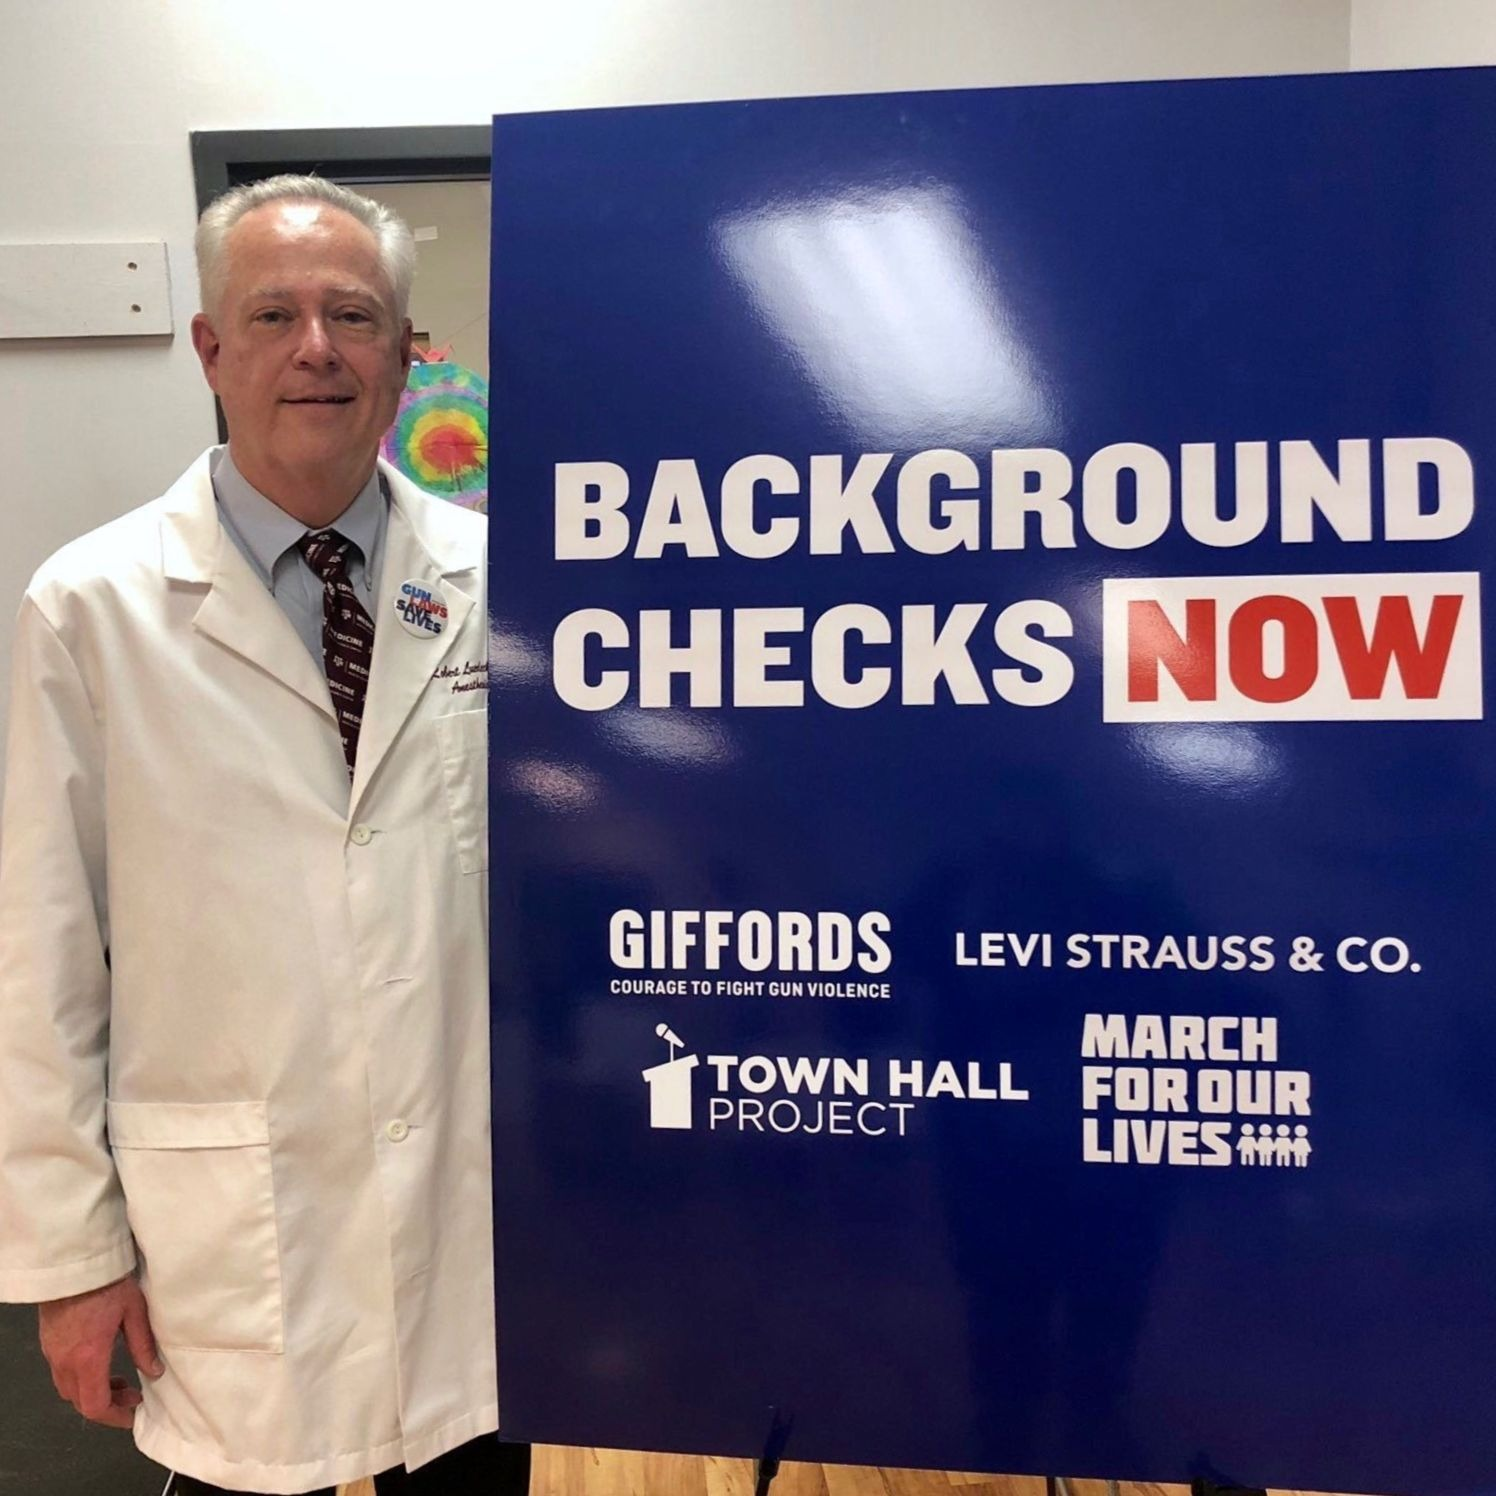 Dr. Robert Luedecke joined the Austin Town Hall to call on Congress to pass universal background checks.